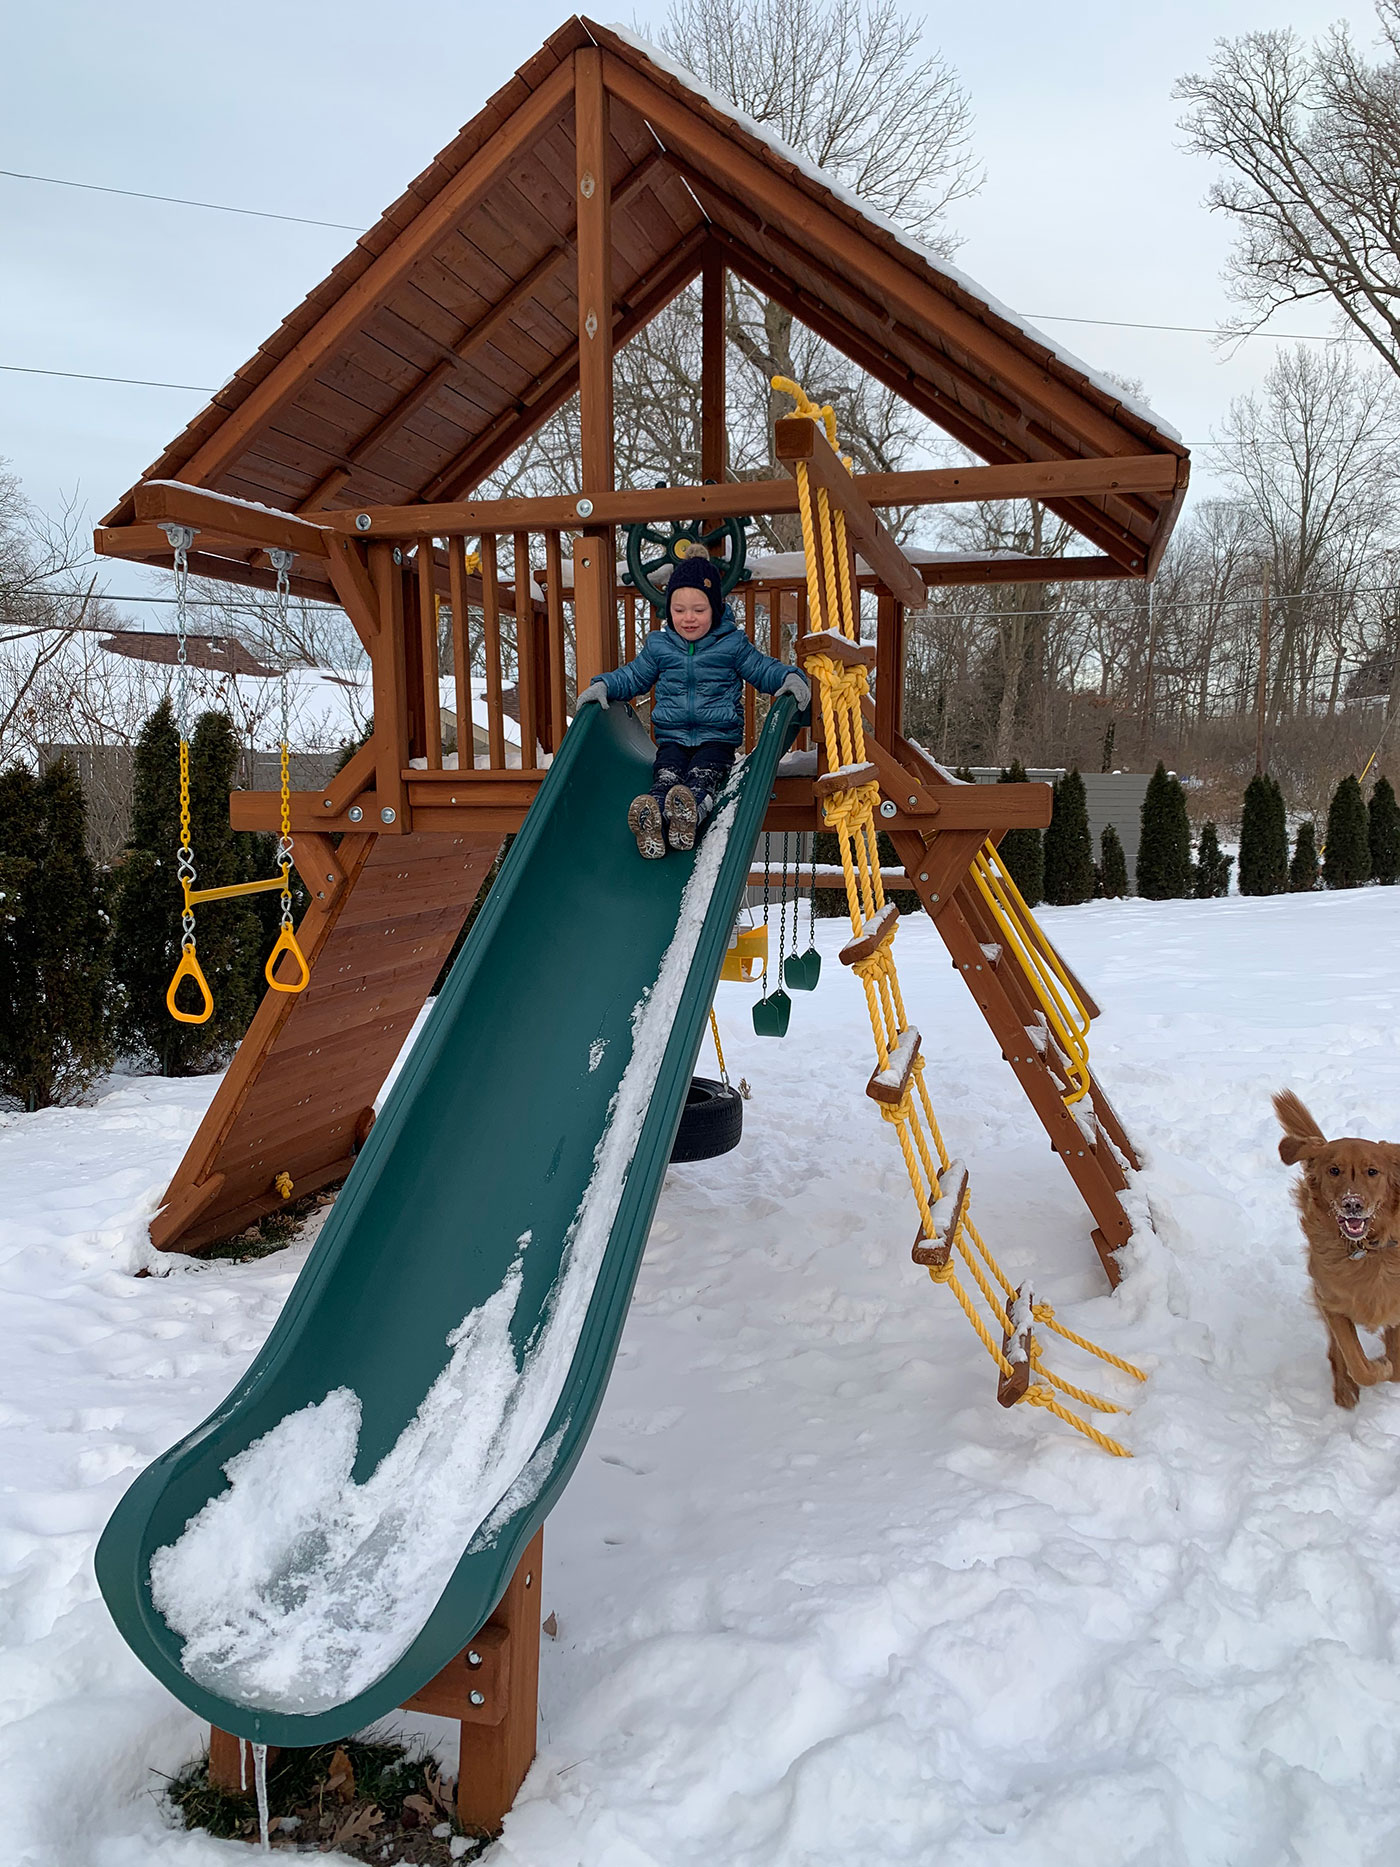 My son sliding down a slide while my dog runs in the background